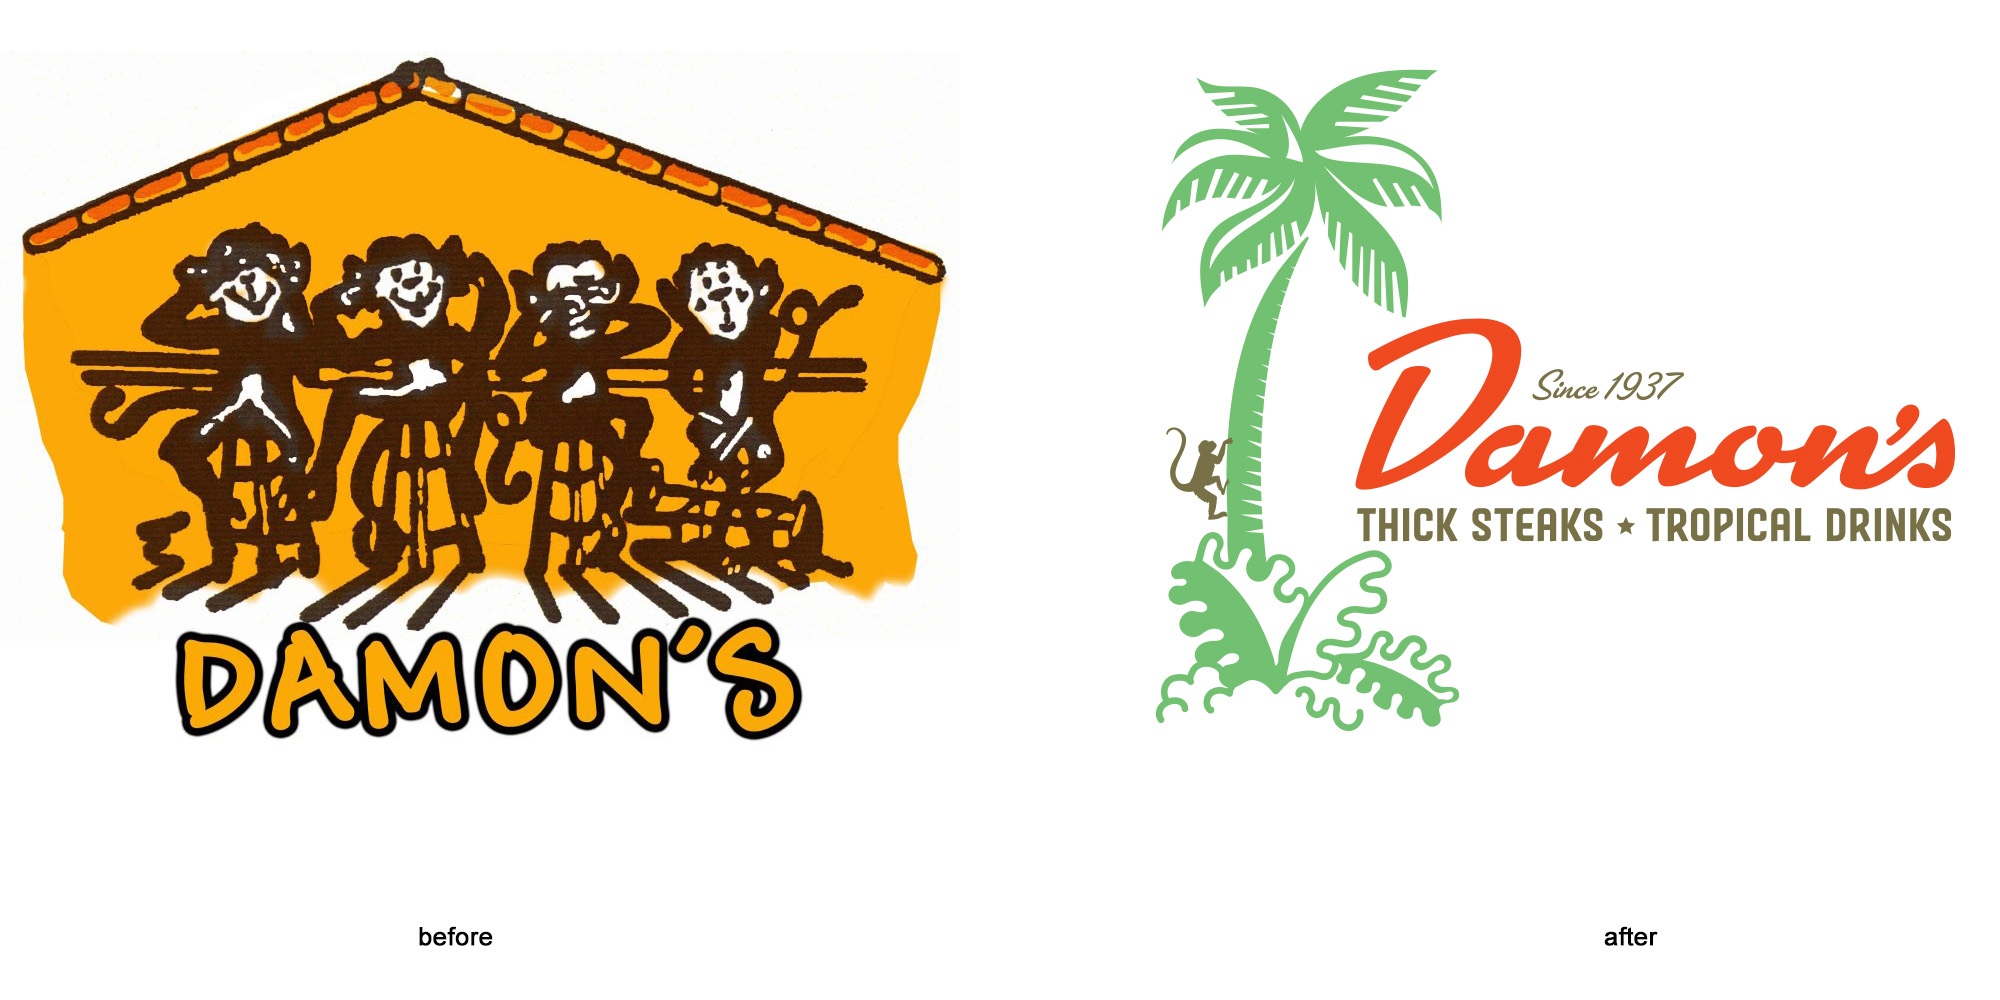 Before & after logos for Damon's in Glendale by Wexler of California